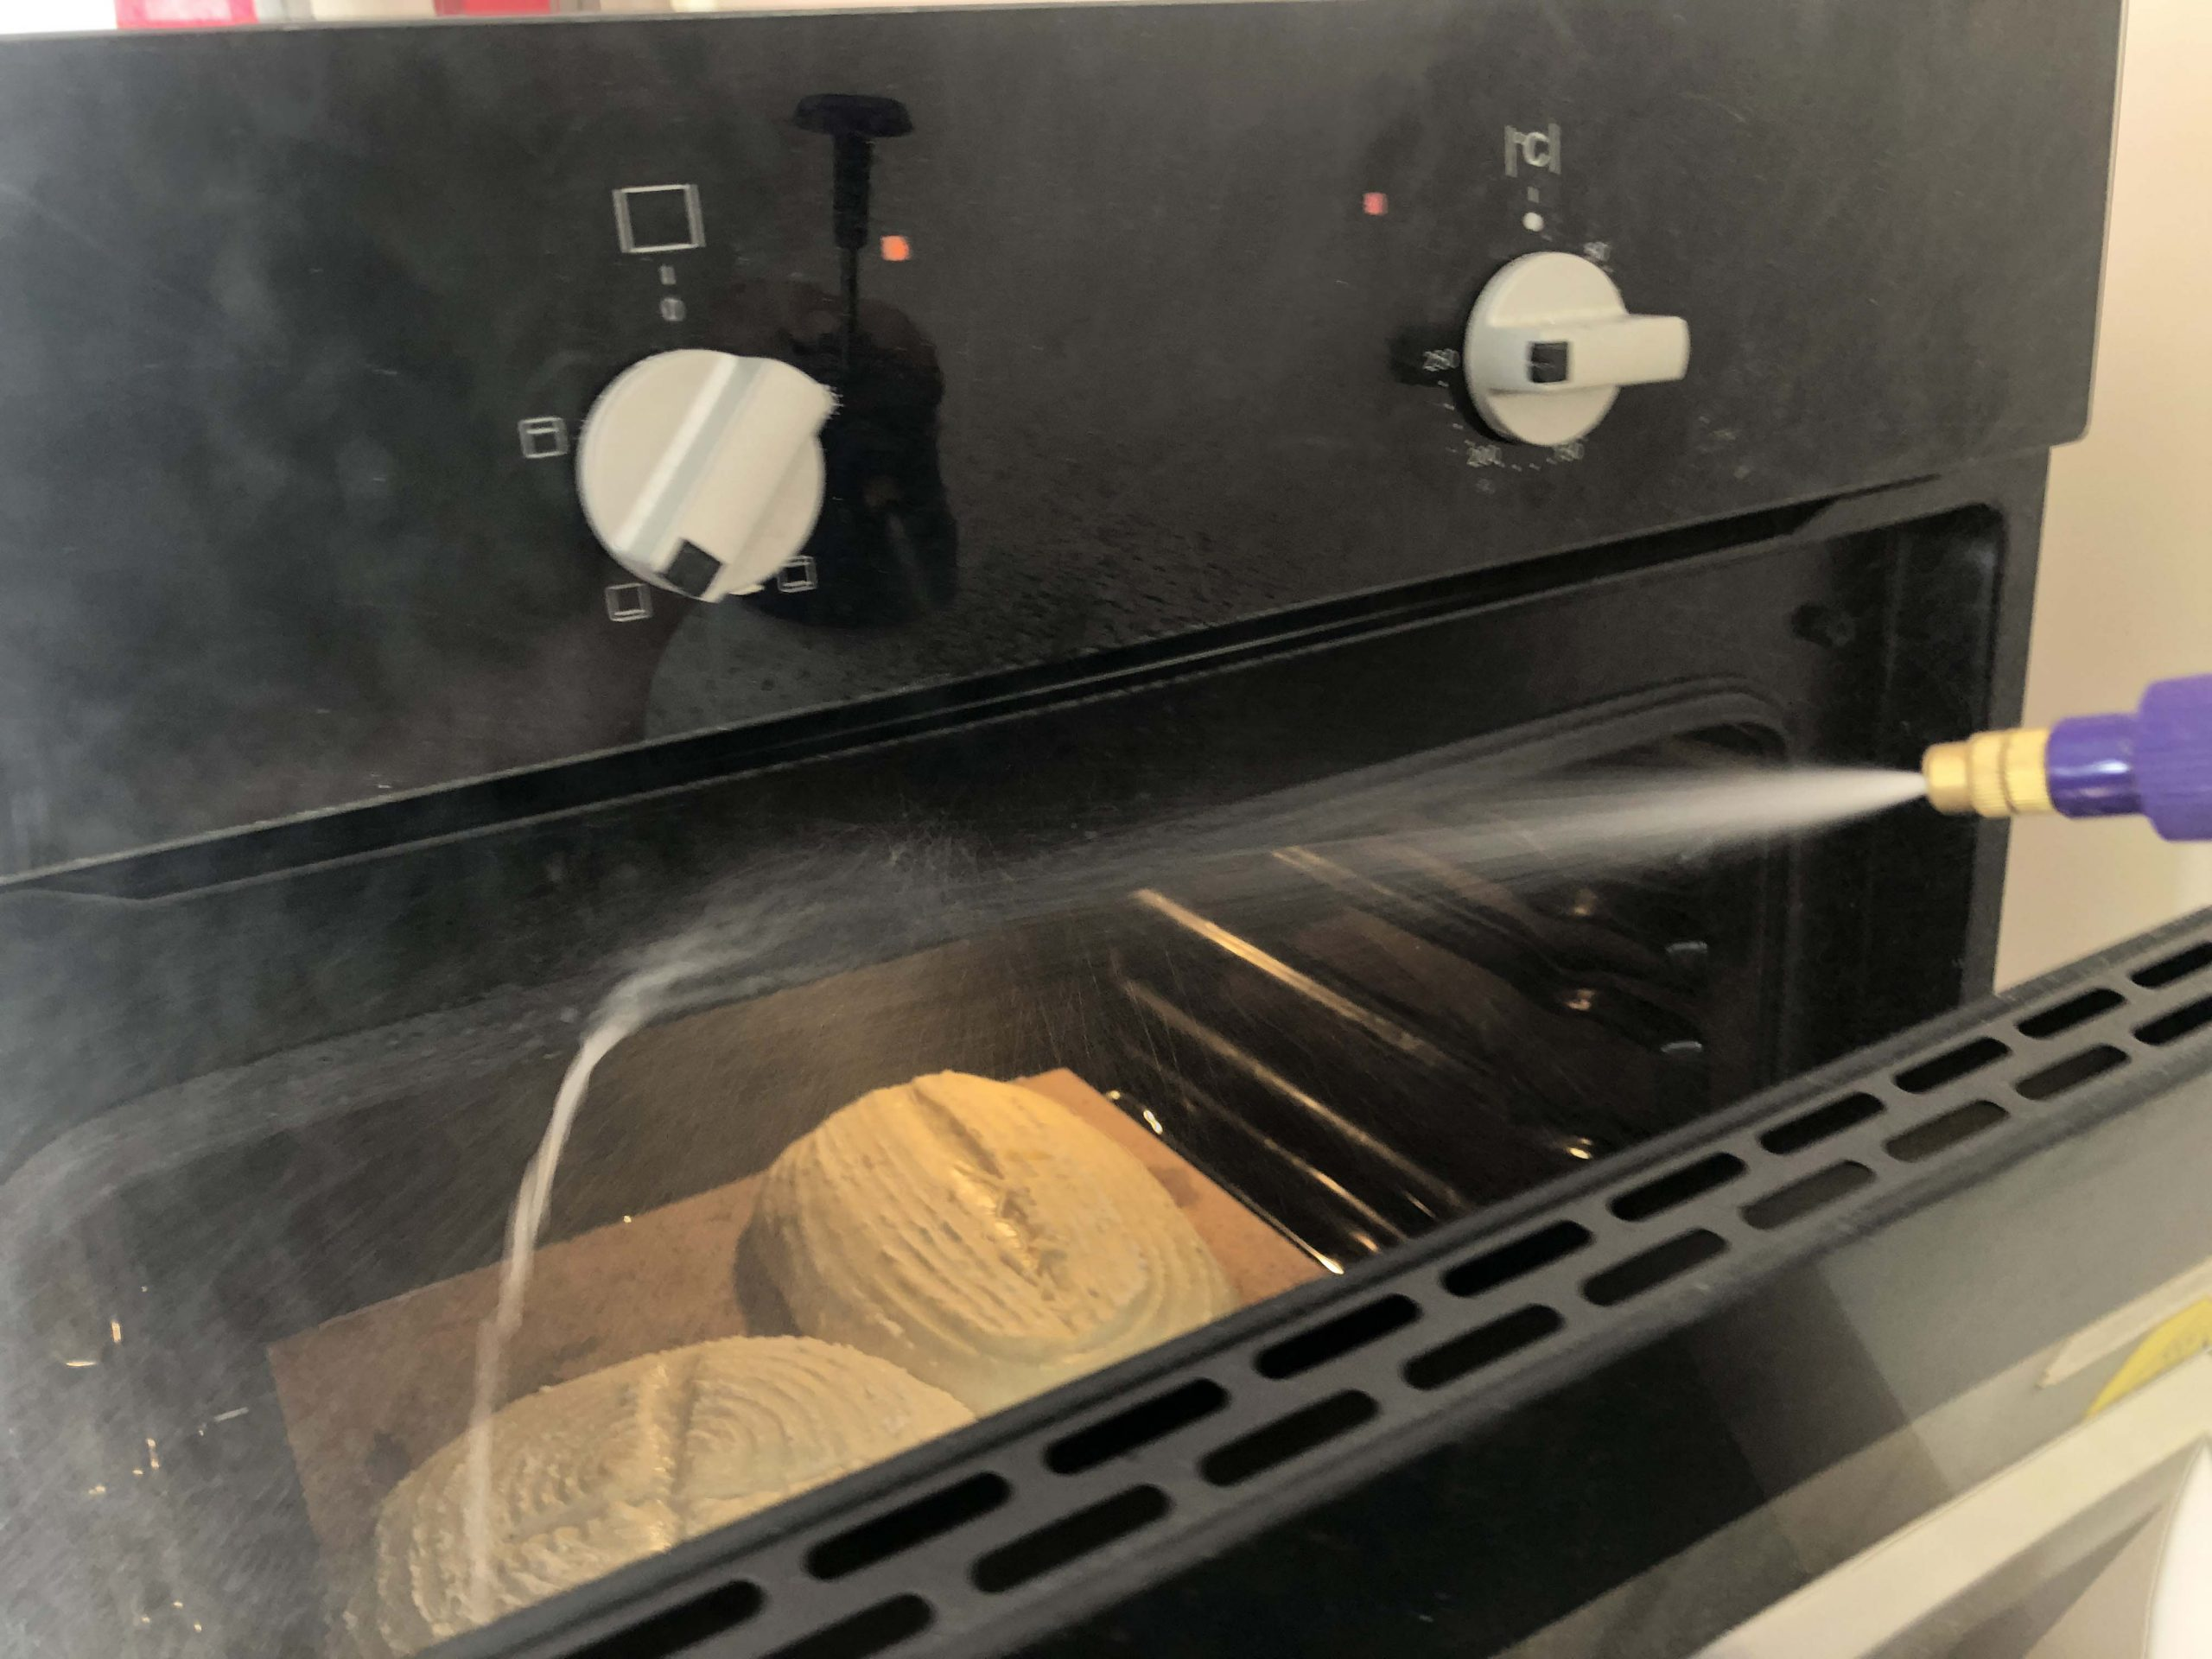 creating steam in the oven for oven spring